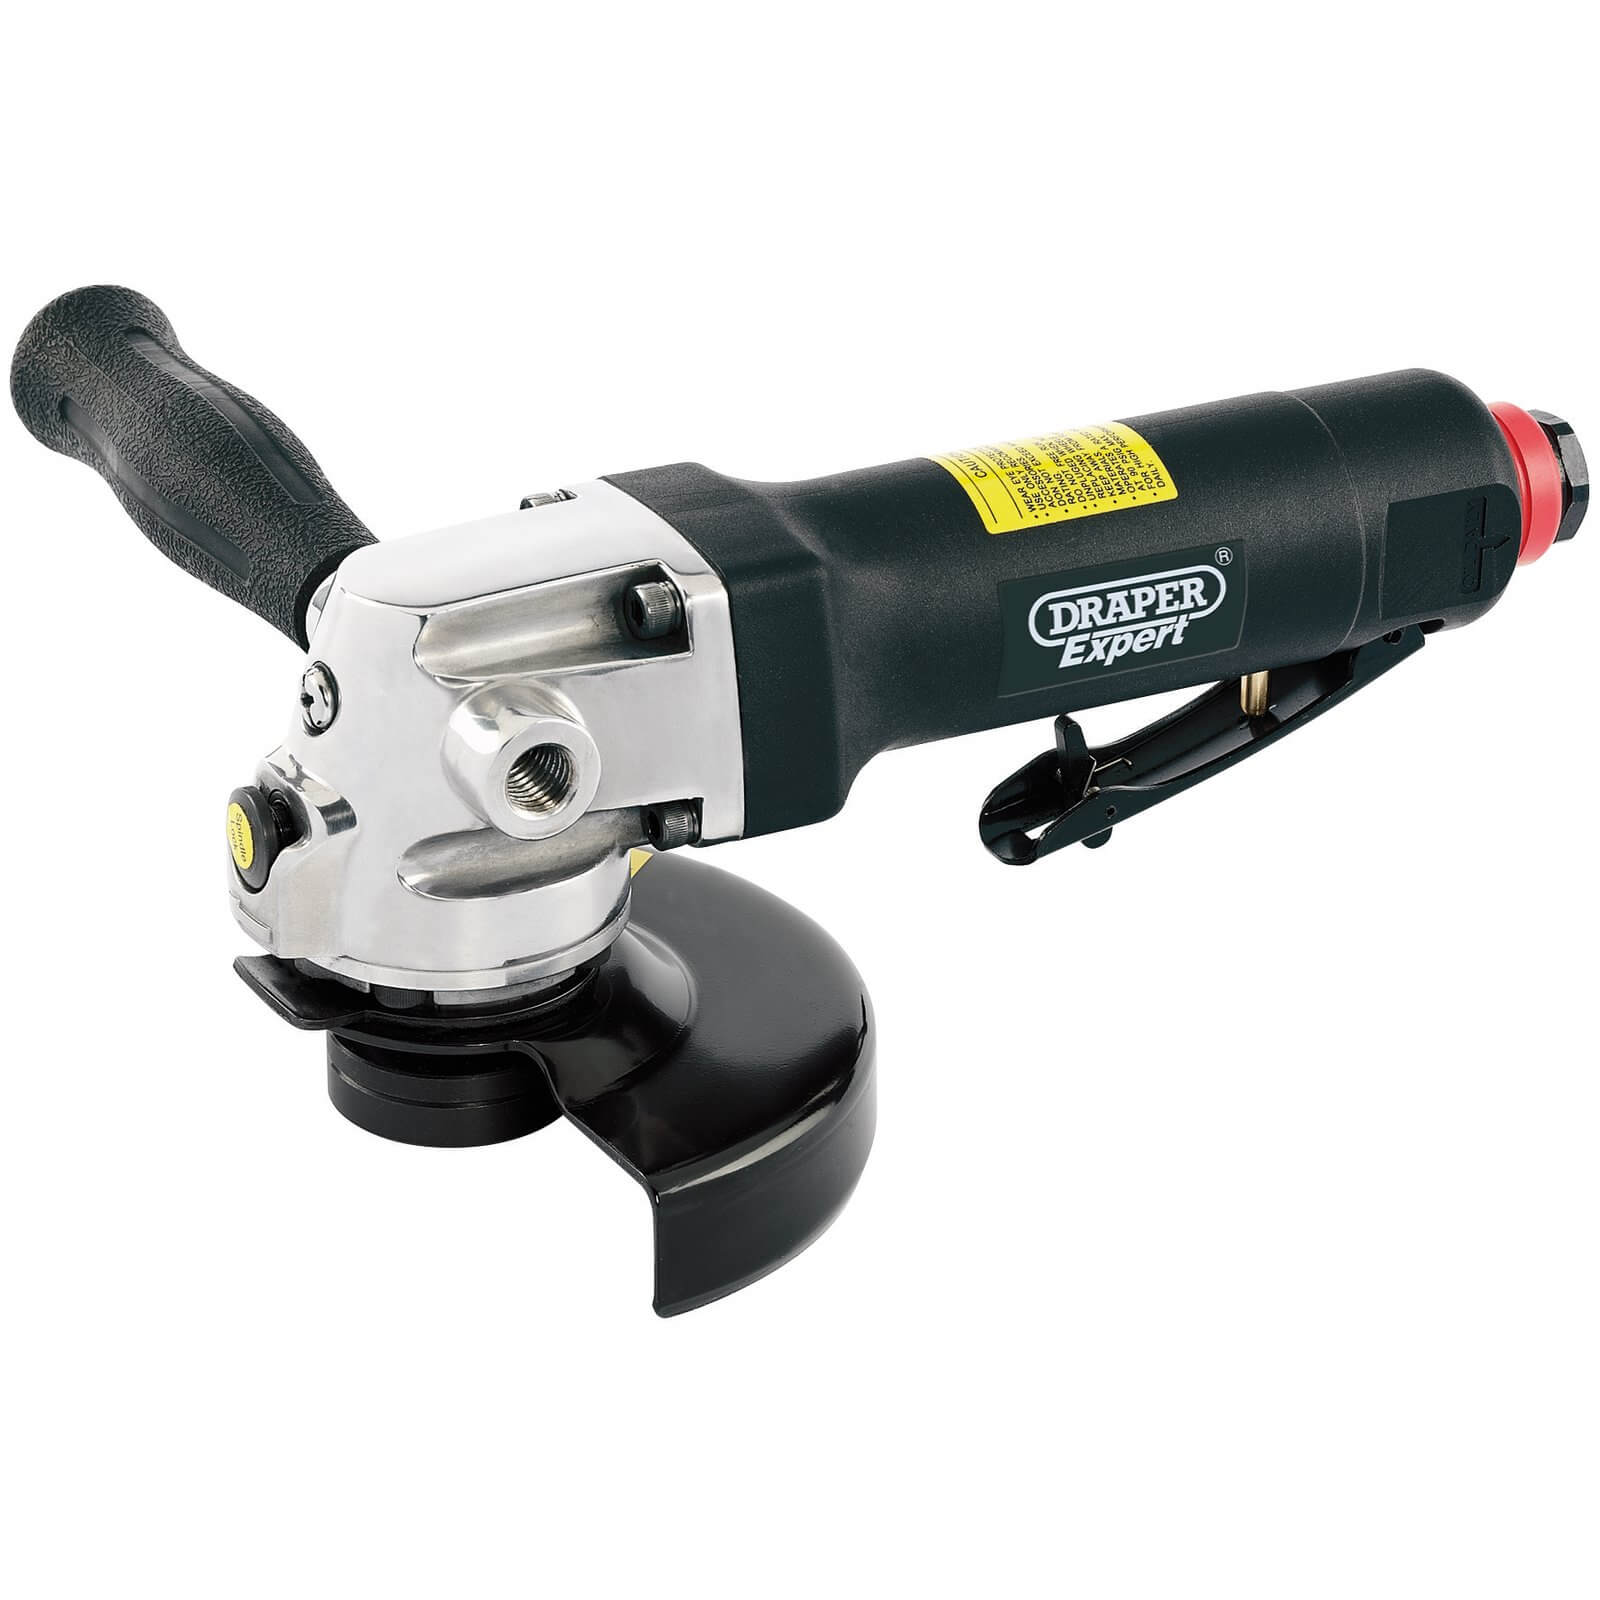 Image of Draper Expert 5228PRO Air Angle Grinder 115mm Disc